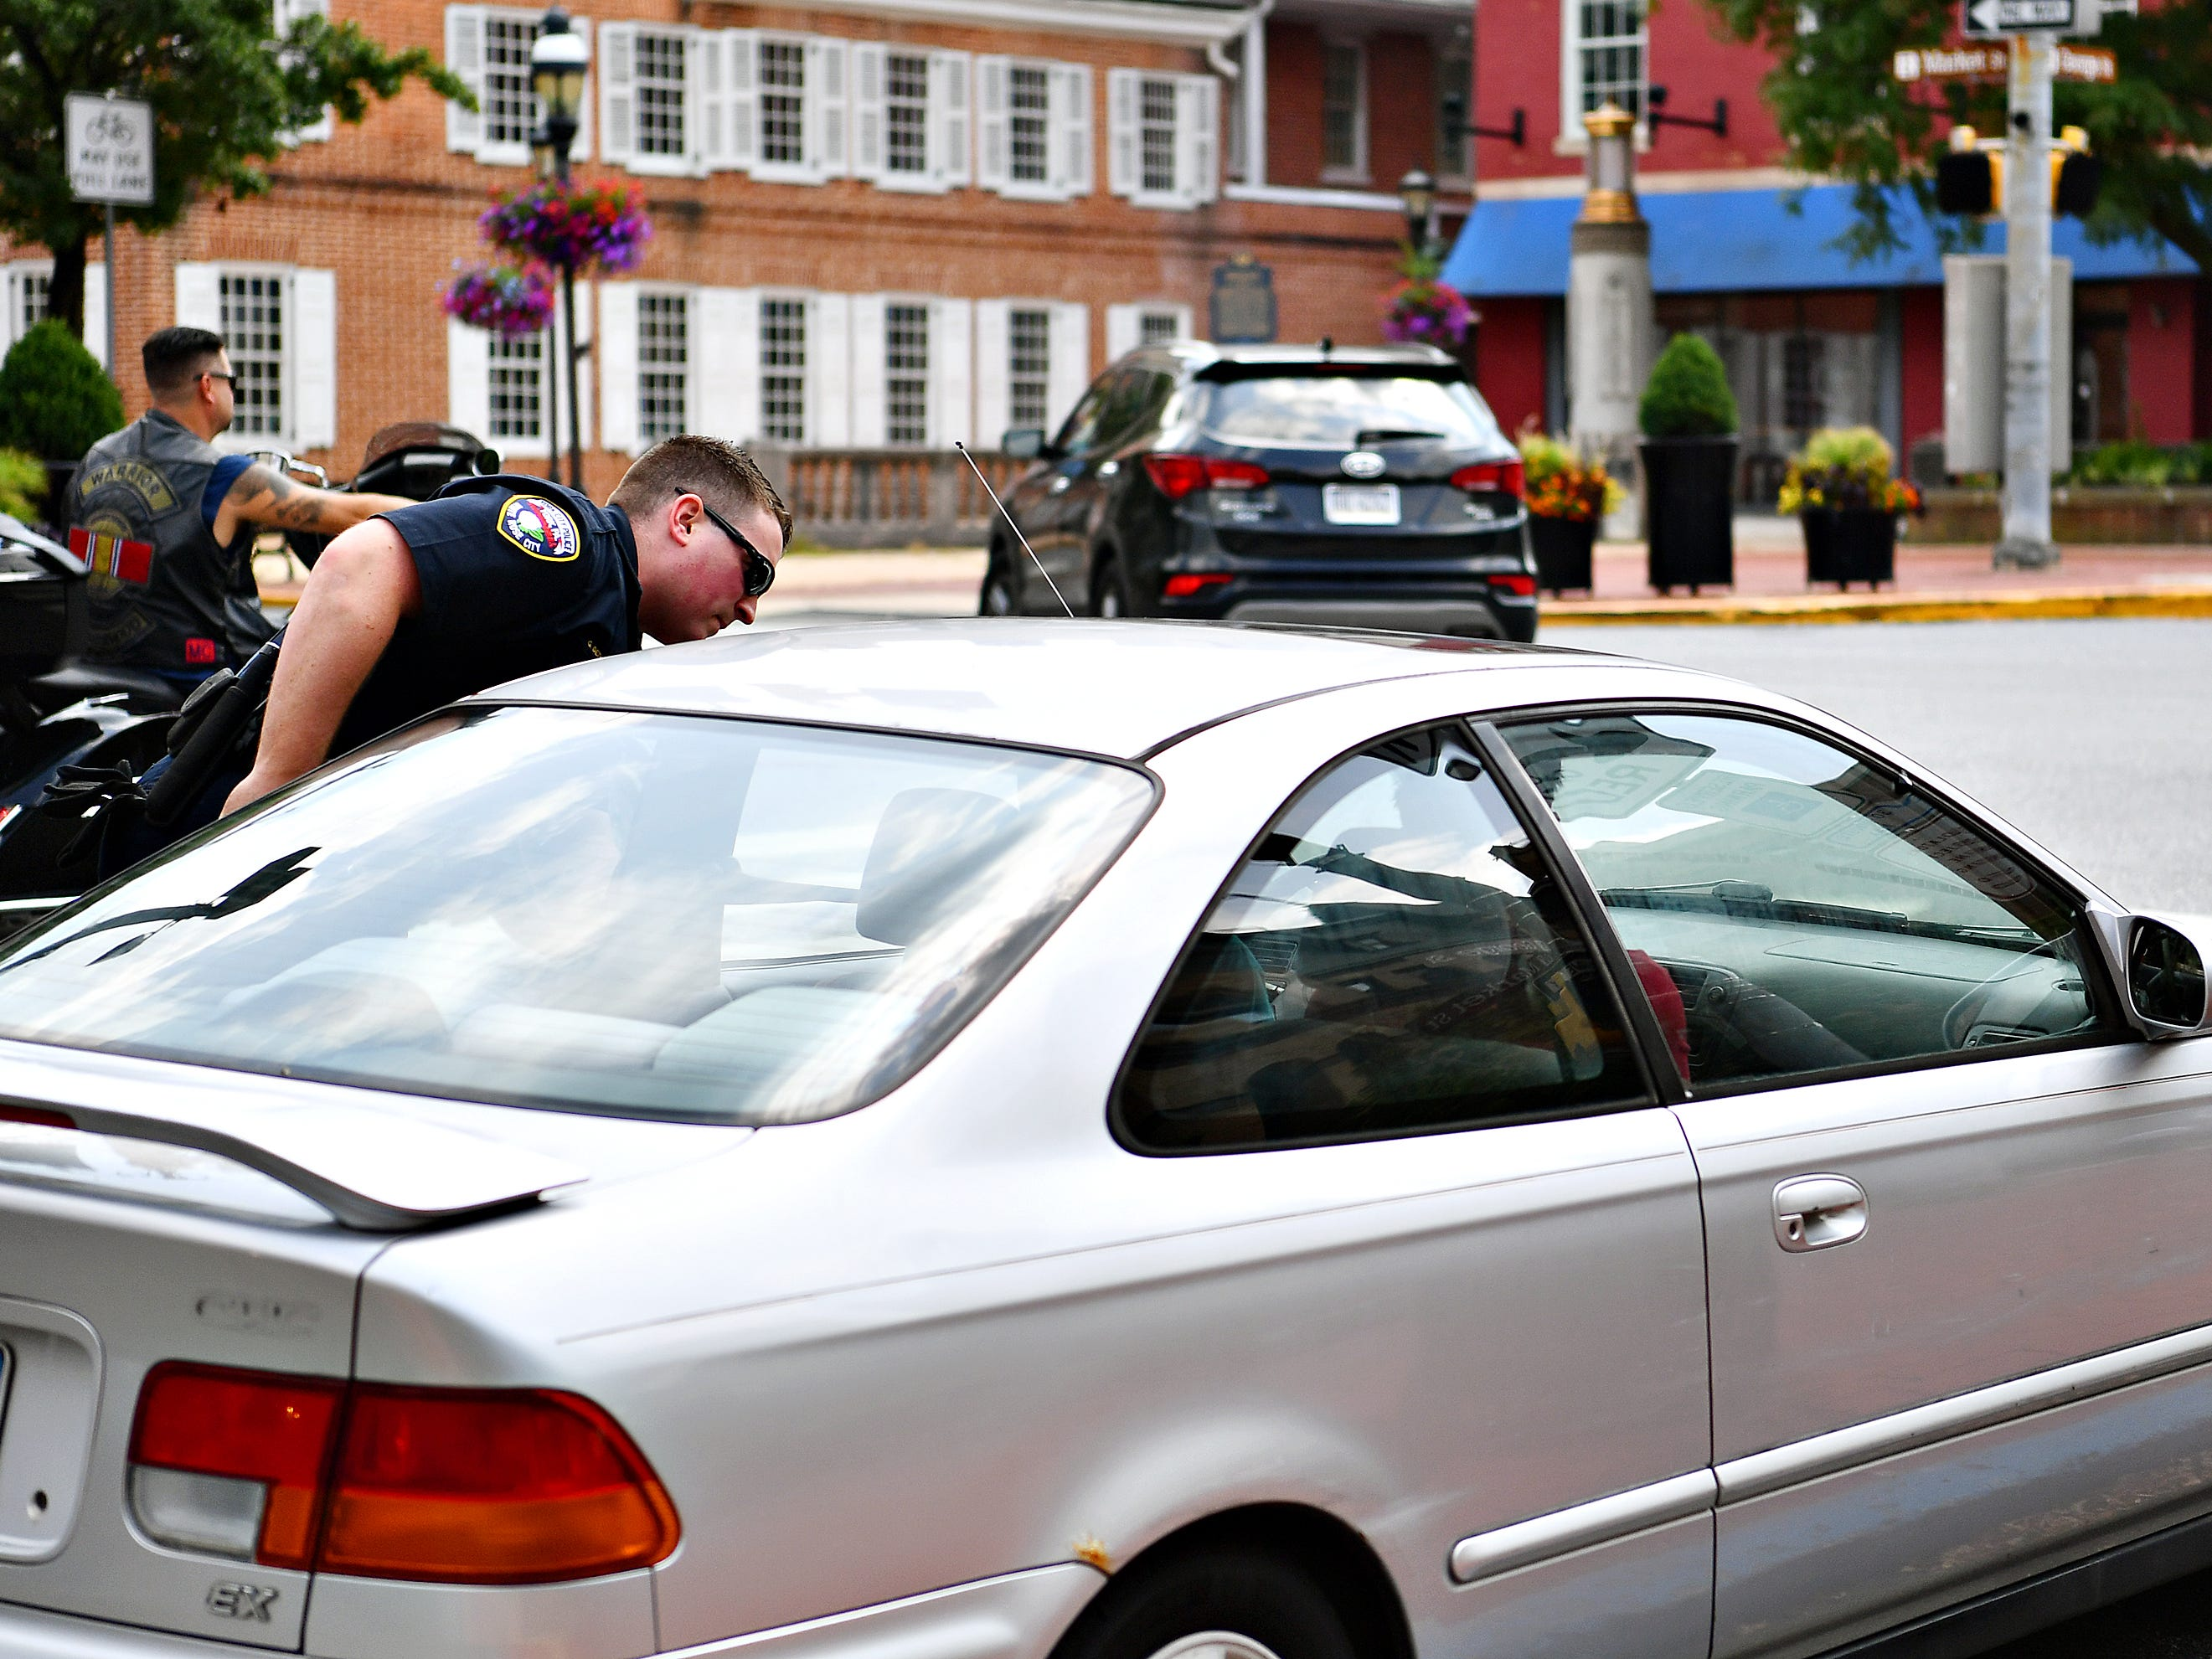 York City Police Officer Galen Detweiler stops a driver who violated pedestrian safety during an enforcement detail at the intersection of North George Street and Clarke Avenue in York City, Friday, Aug. 10, 2018. Dawn J. Sagert